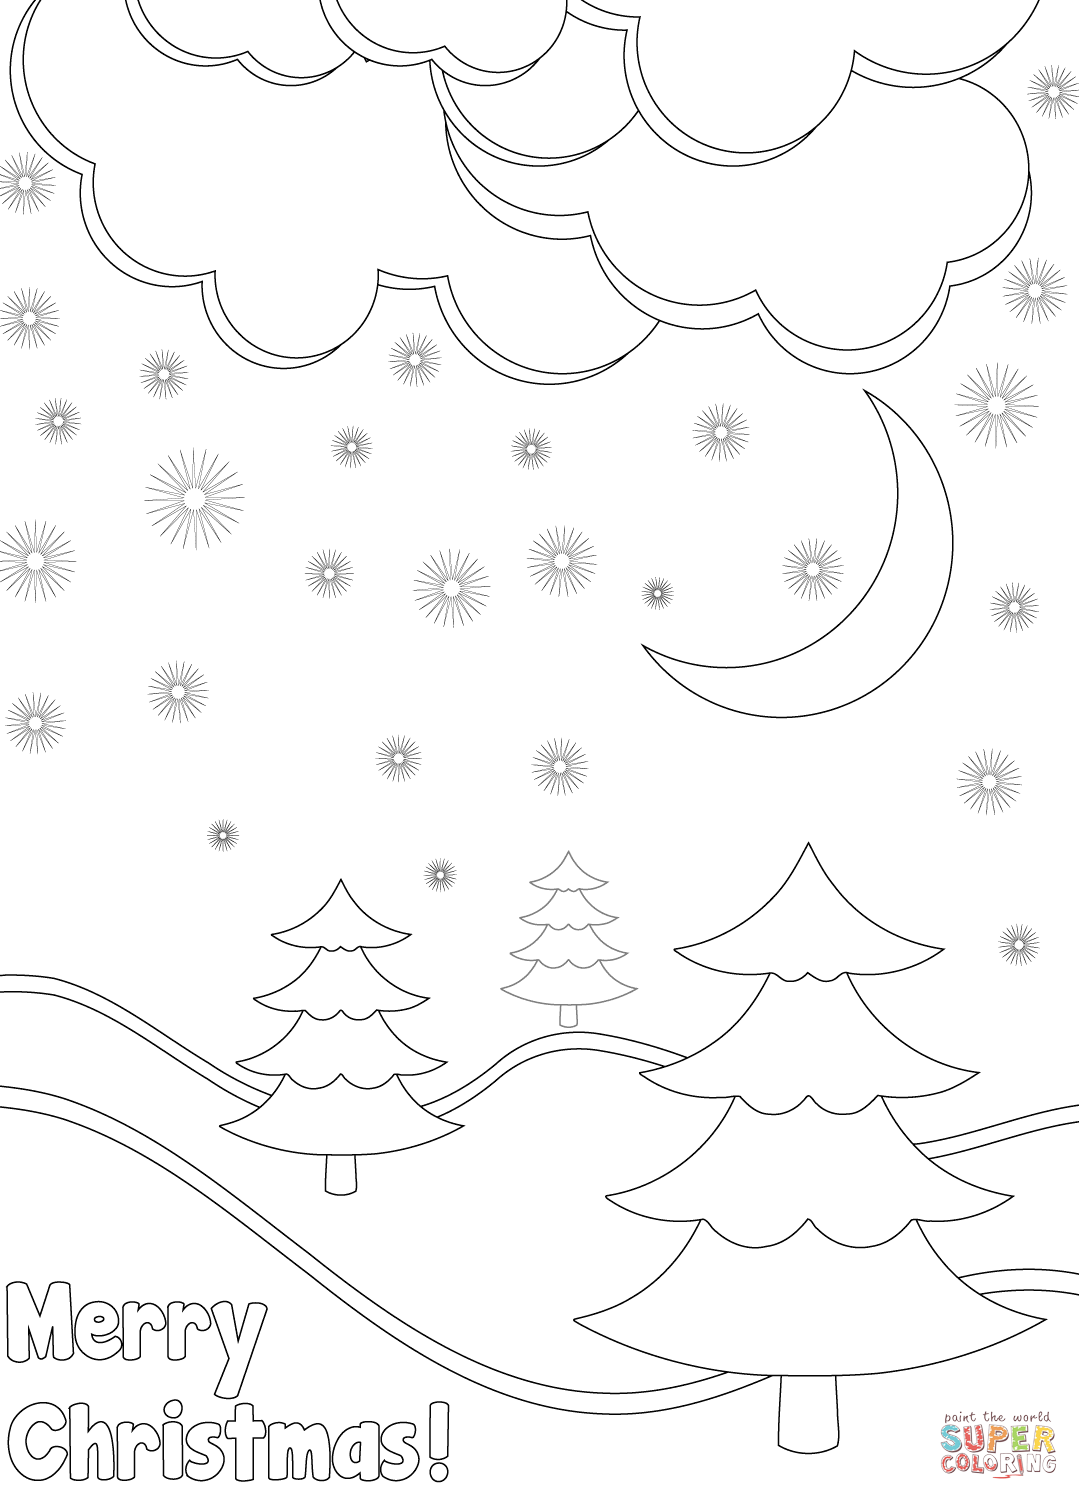 Christmas Card Colouring Pages With Merry Winter Landscape Coloring Page Free